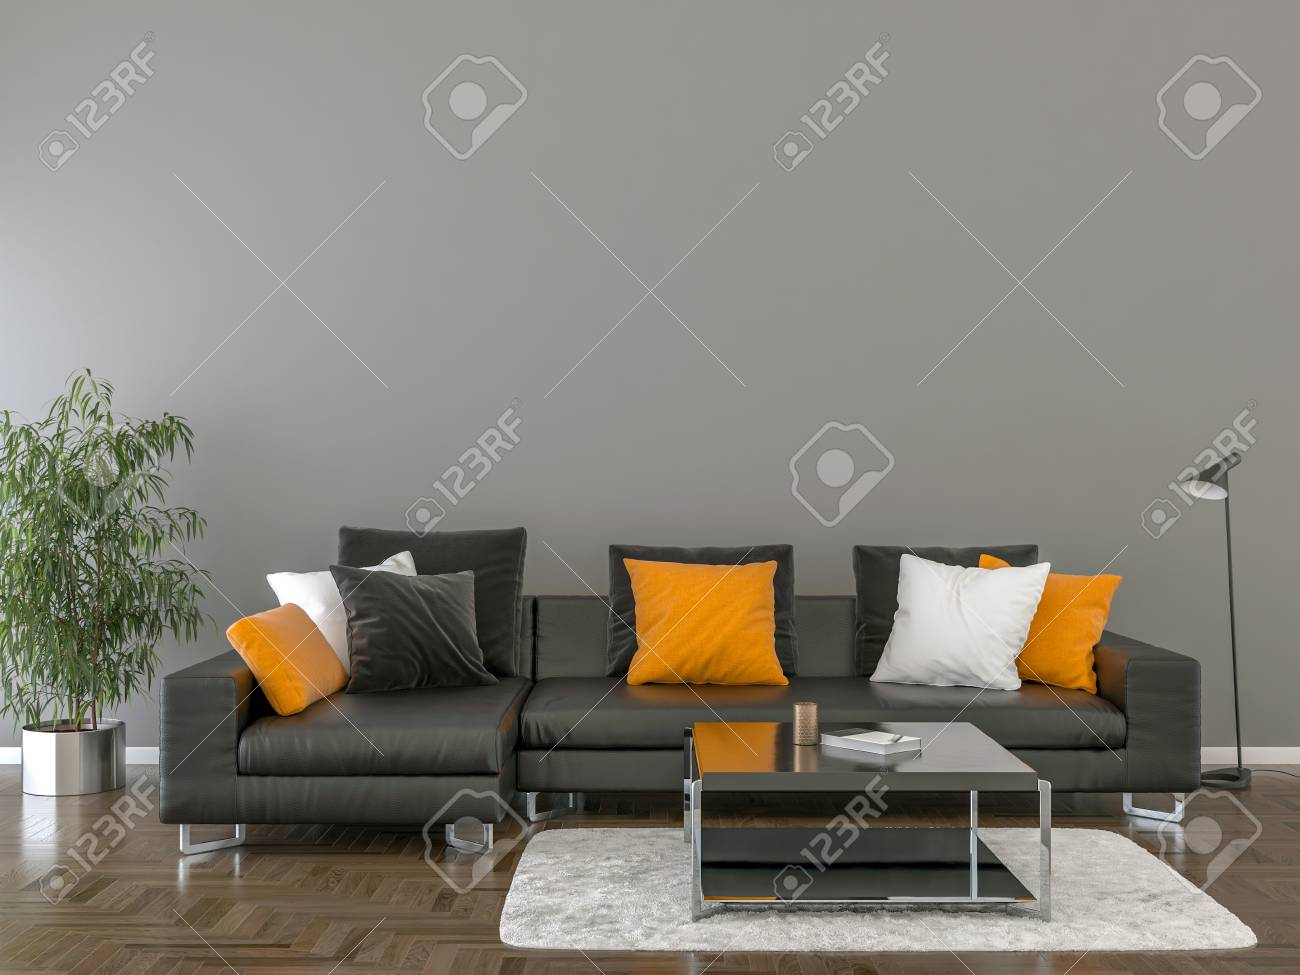 Living room interior with black sofa, pillows and coffee table..